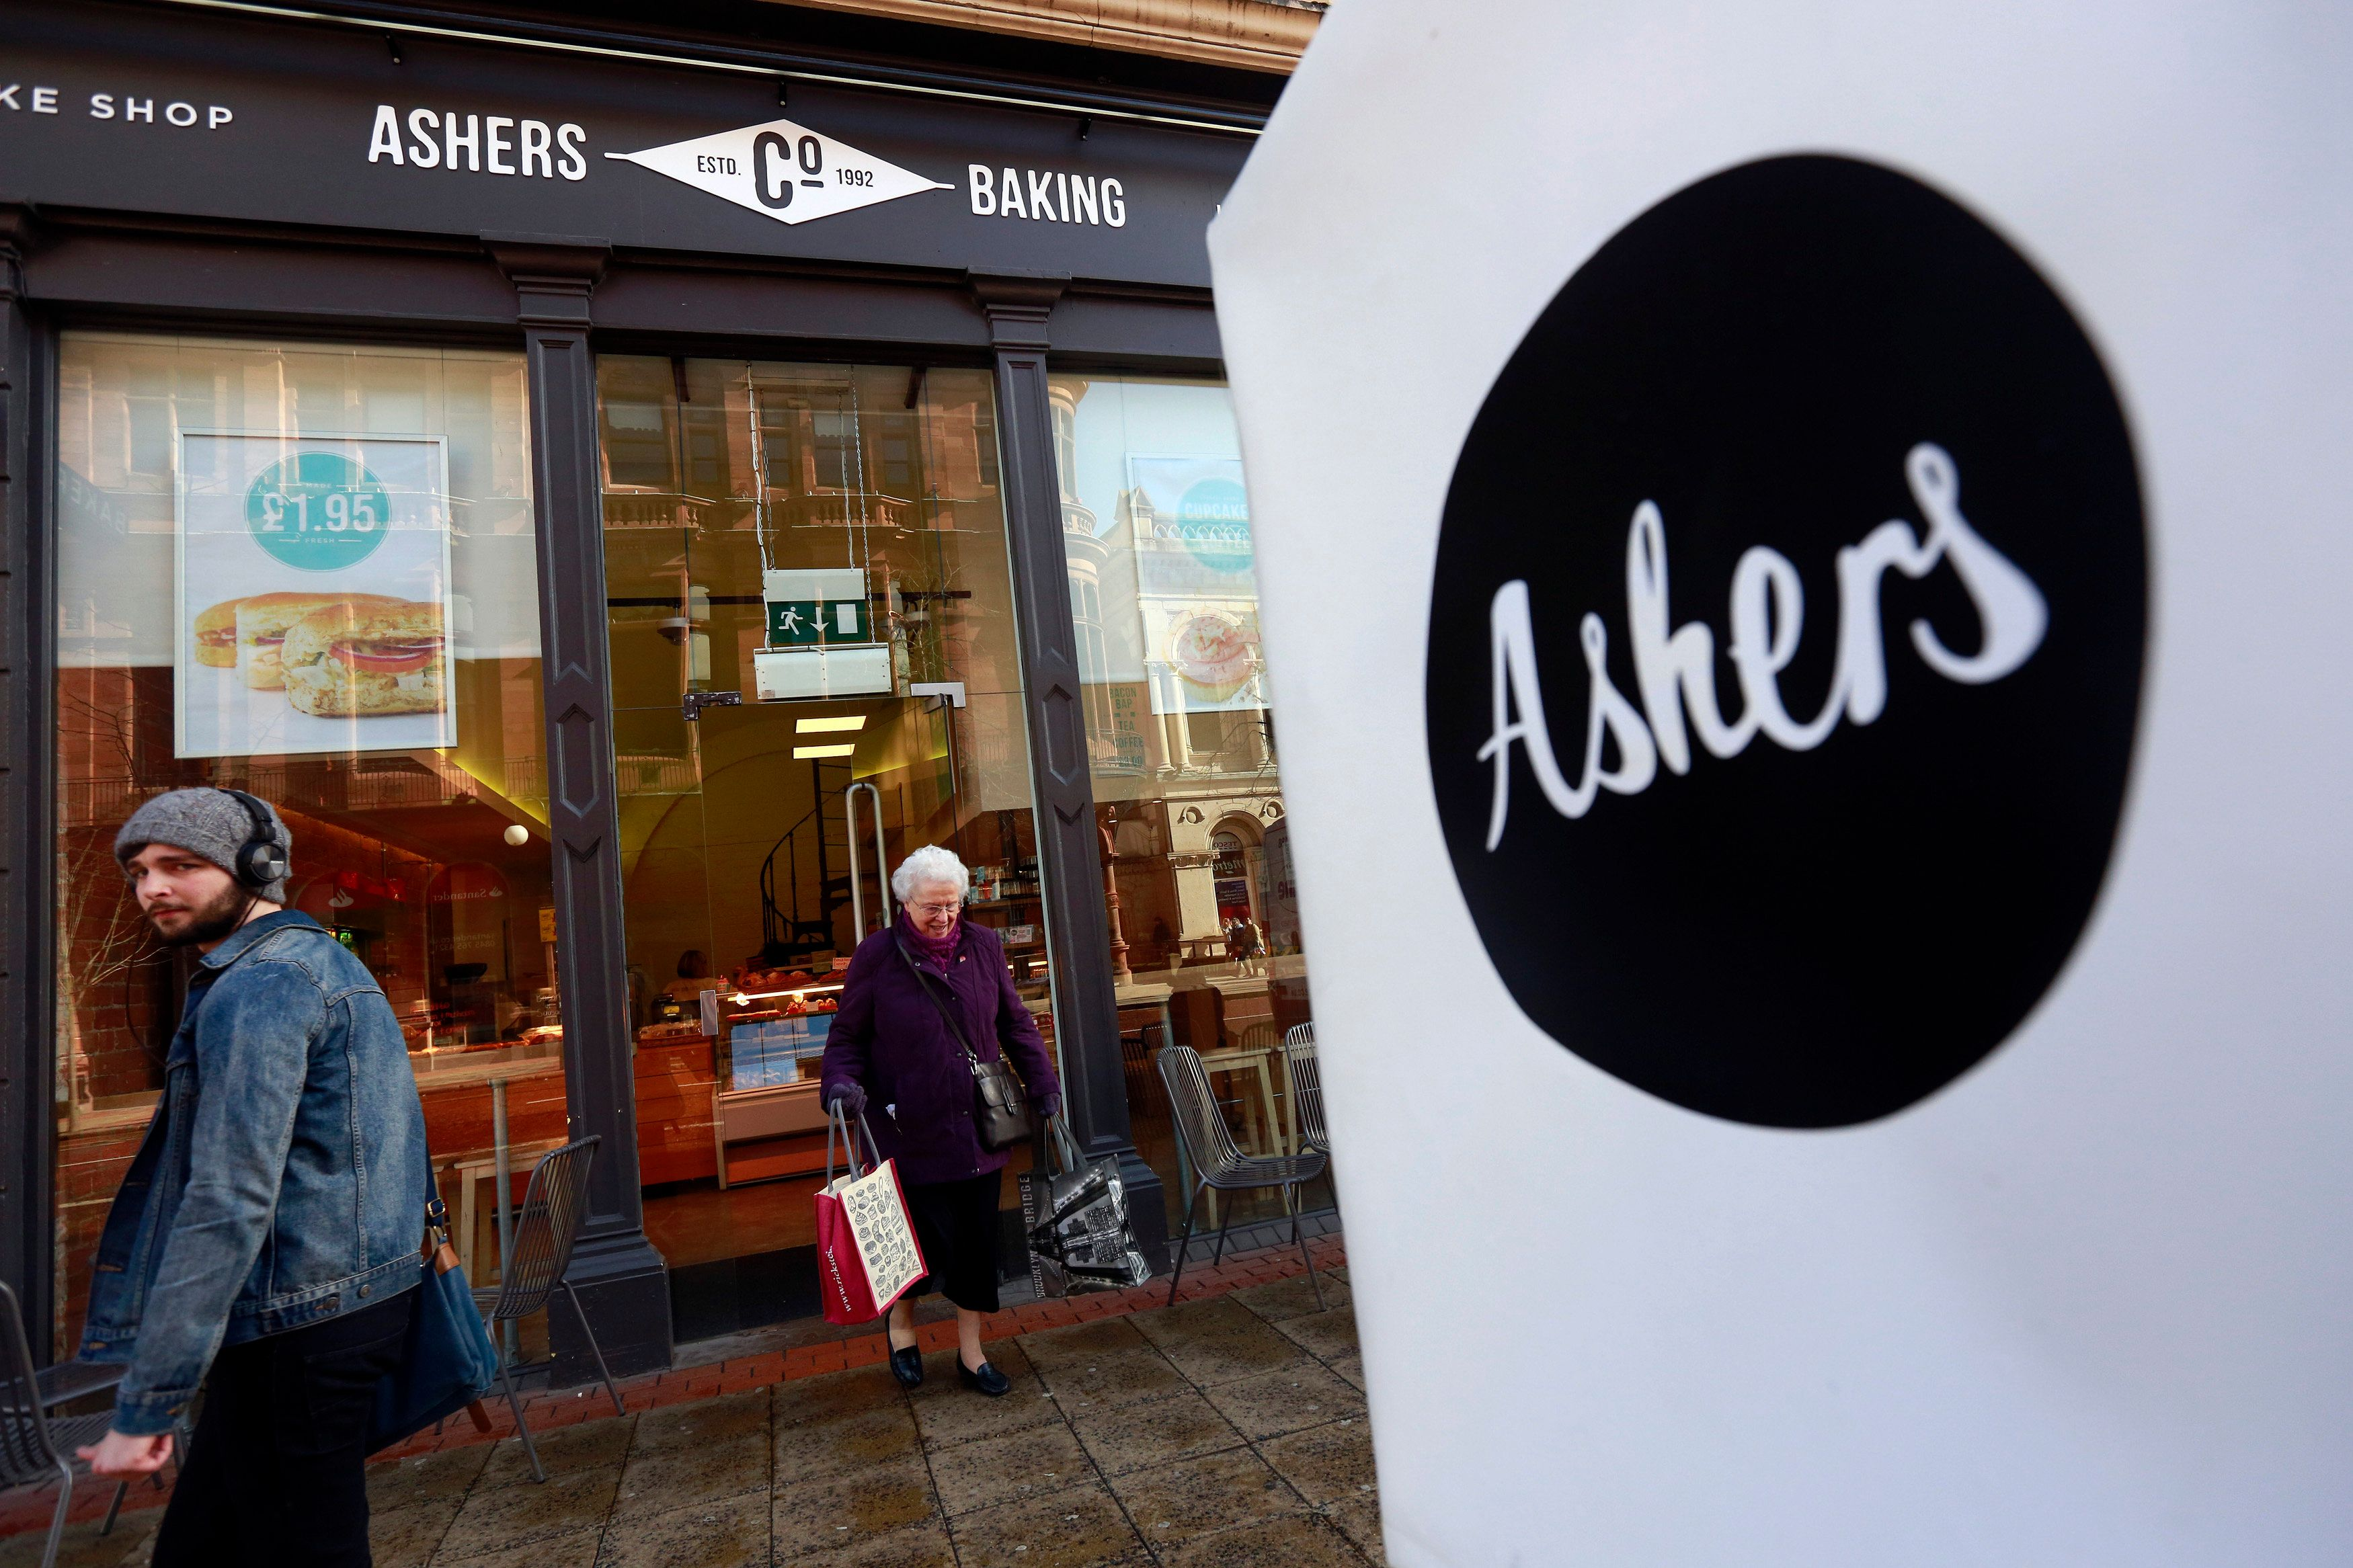 A woman leaves Ashers bakery in Belfast. March 26, 2015. Ashers is to face a discrimination case from the Equality Commission after it refused to make a cake bearing a pro-gay marriage slogan on it which was to be given to Andrew Muir, Northern Ireland's first openly gay mayor. The bakers refused to make the cake on the grounds that it contradicted their religious beliefs according to local media. REUTERS/Cathal McNaughton